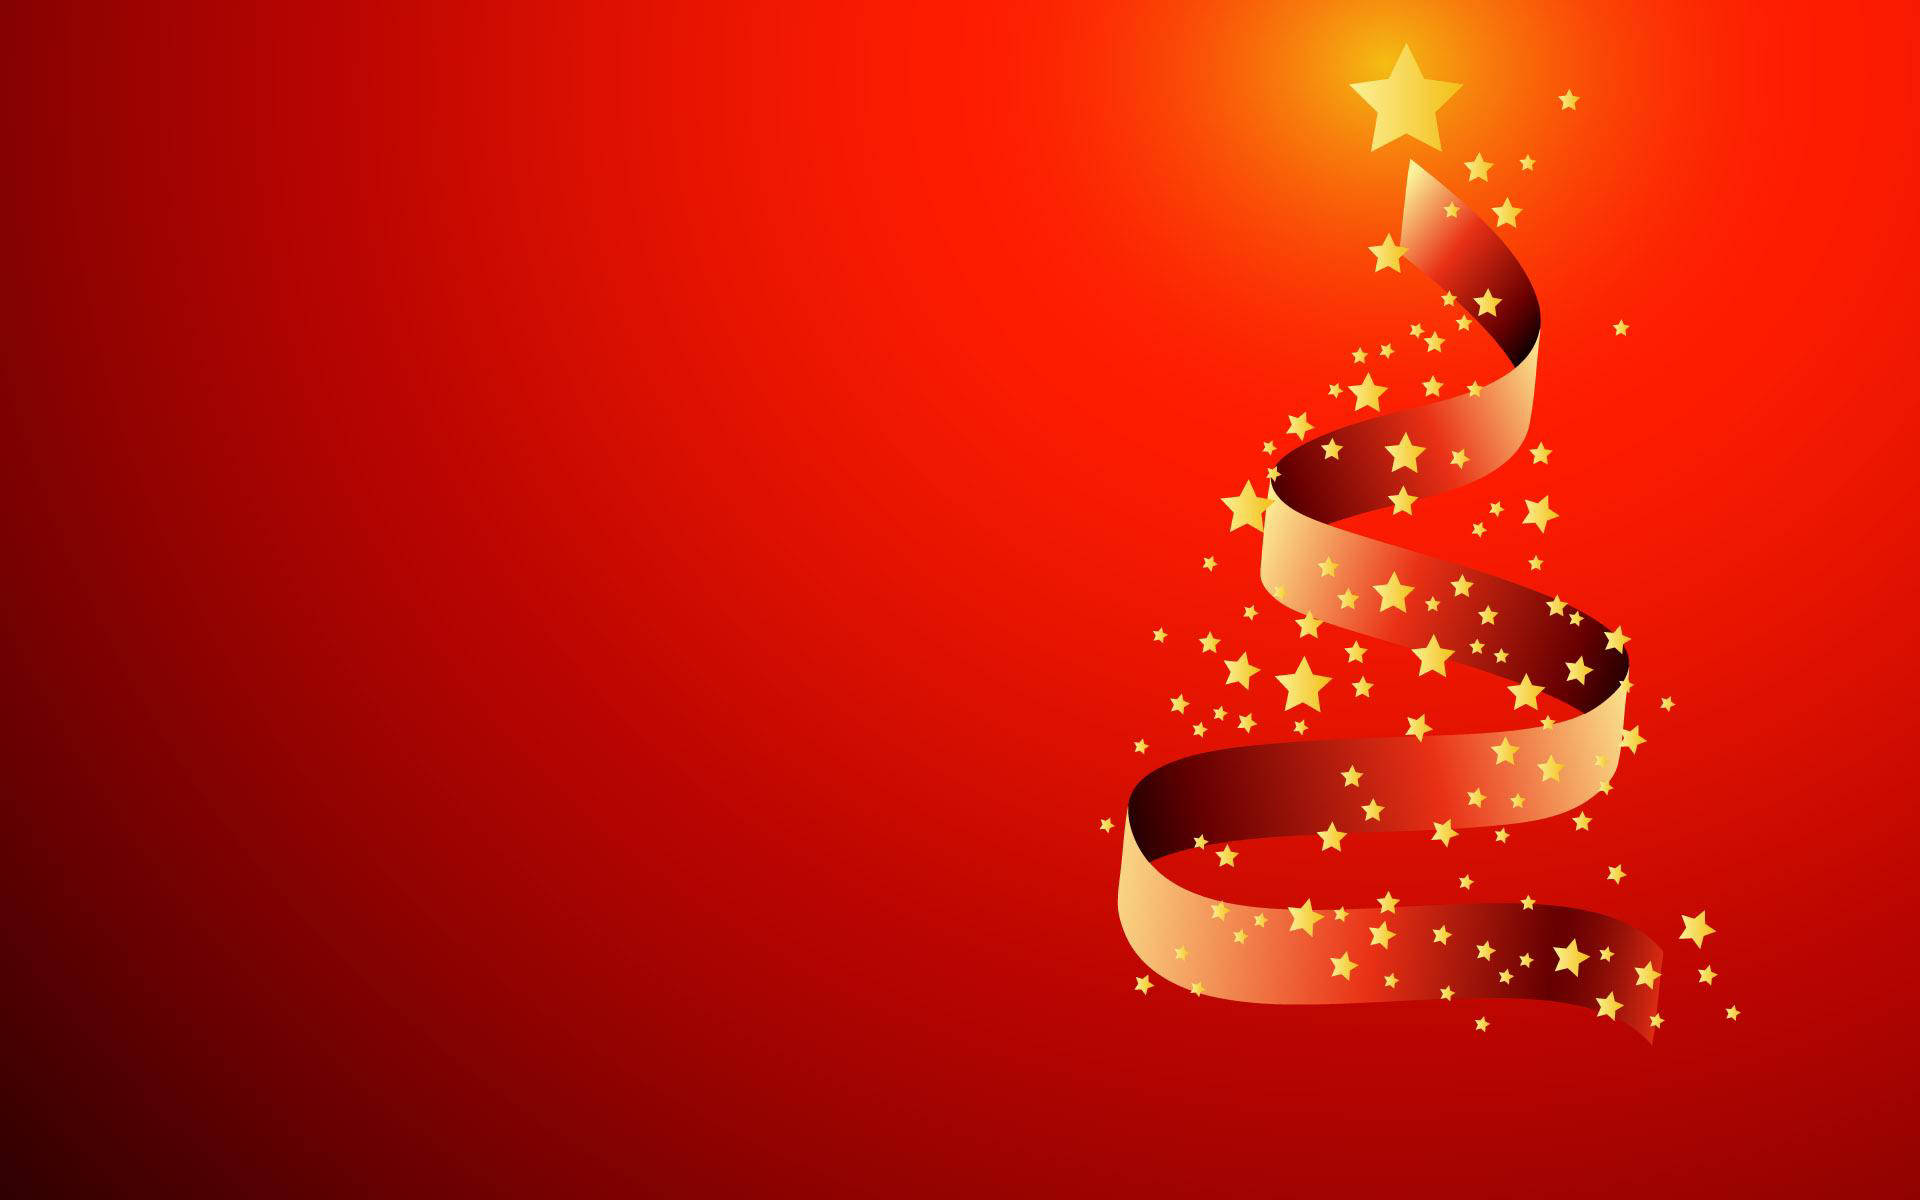 red holiday backgrounds 18372